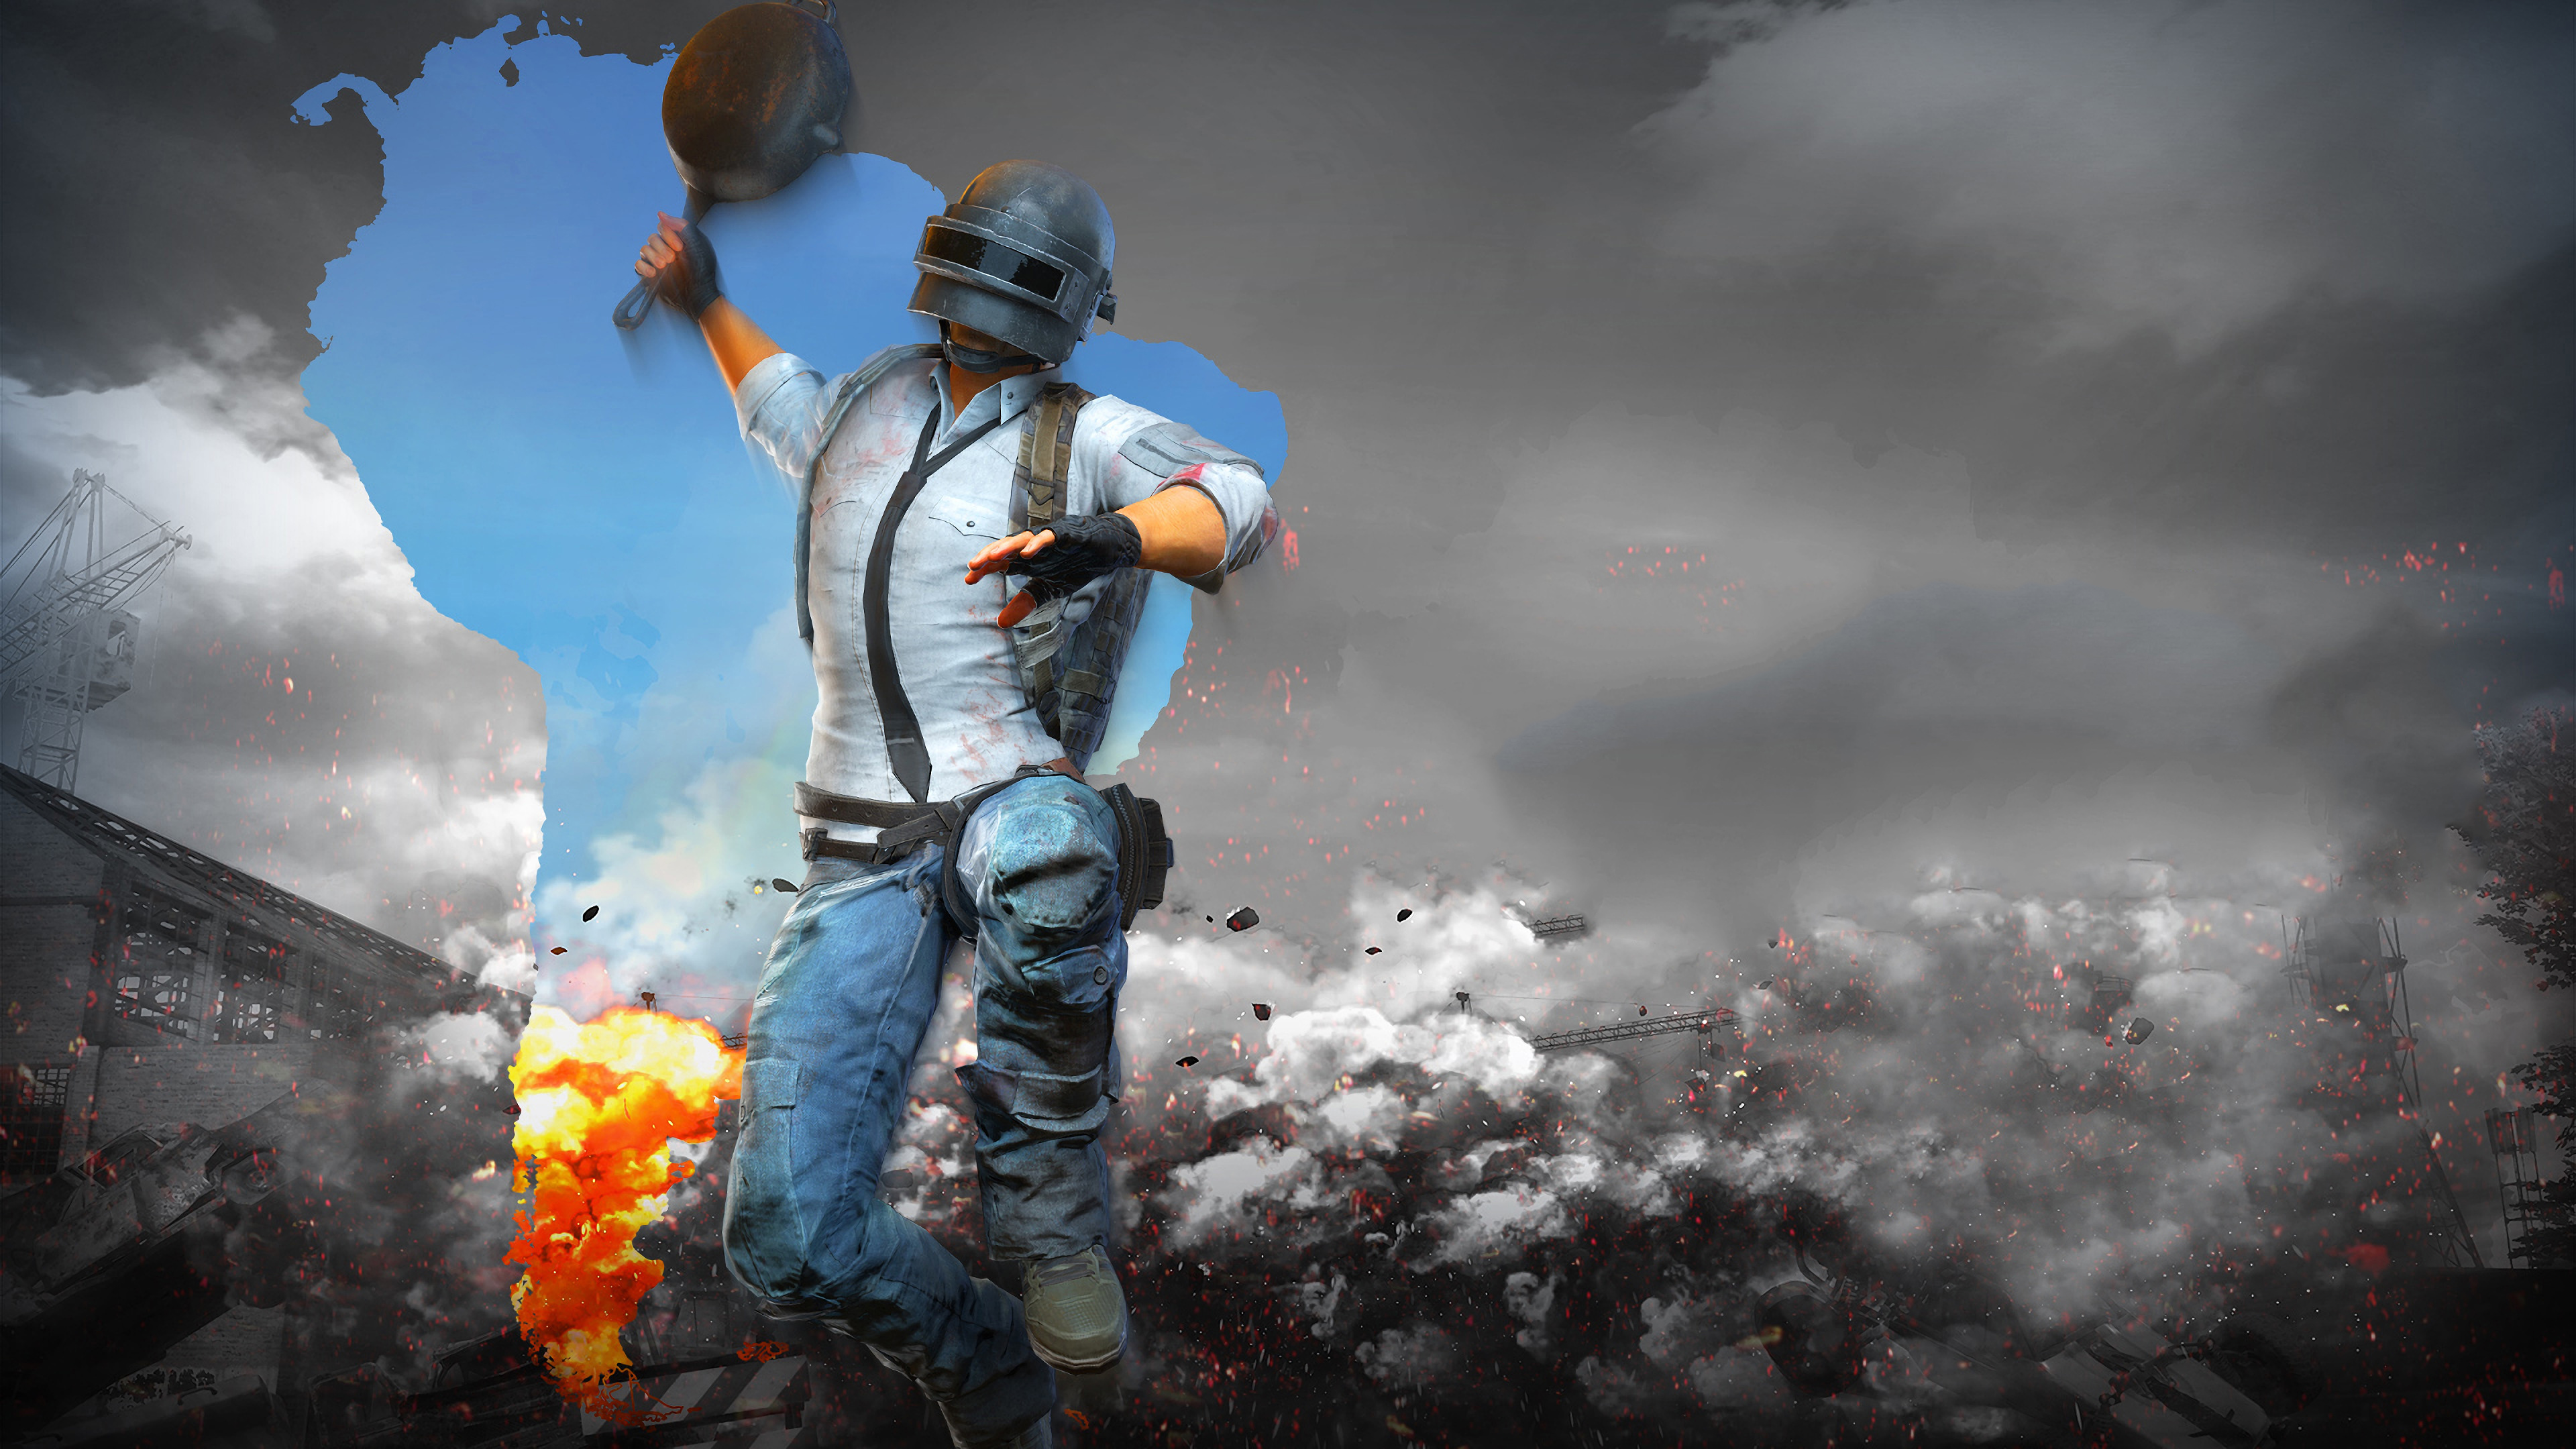 2048x1152 Pubg Bike Rider 4k 2048x1152 Resolution Hd 4k: PUBG Helmet Man With Pan 4k, HD Games, 4k Wallpapers